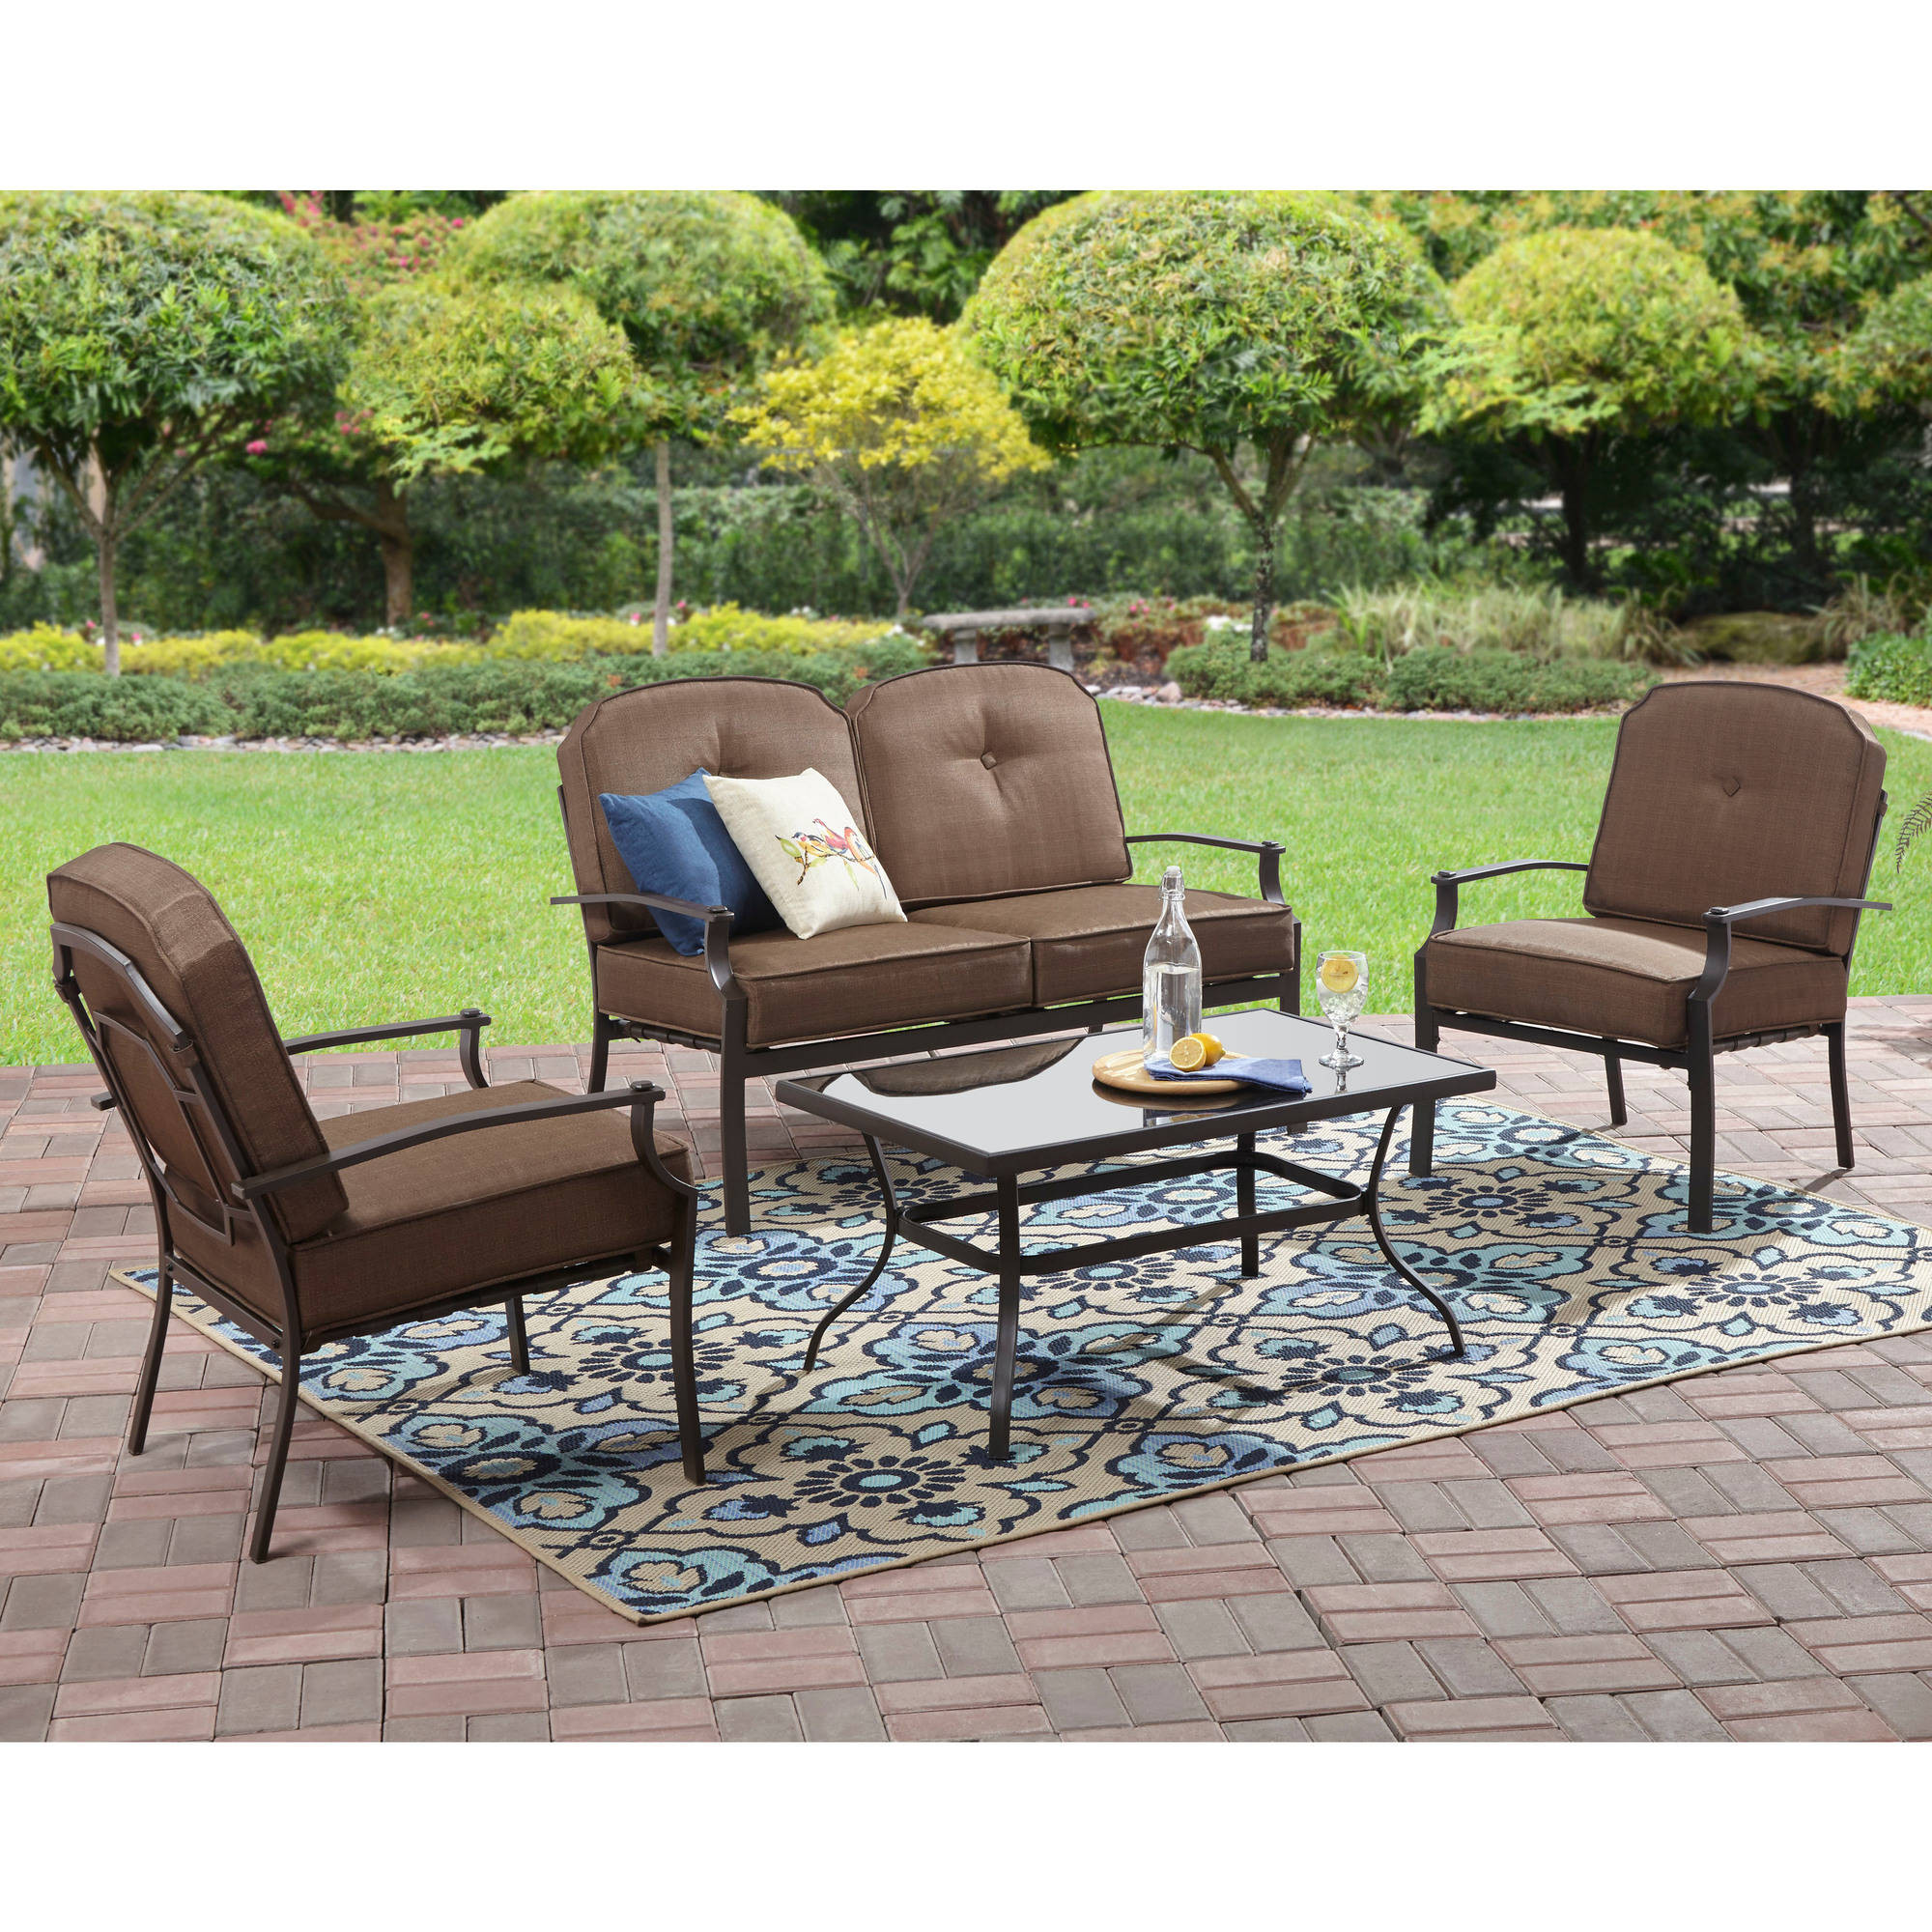 Best ideas about Walmart Patio Furniture . Save or Pin Mainstays Wentworth 3 Piece High Outdoor Bistro Set Seats Now.